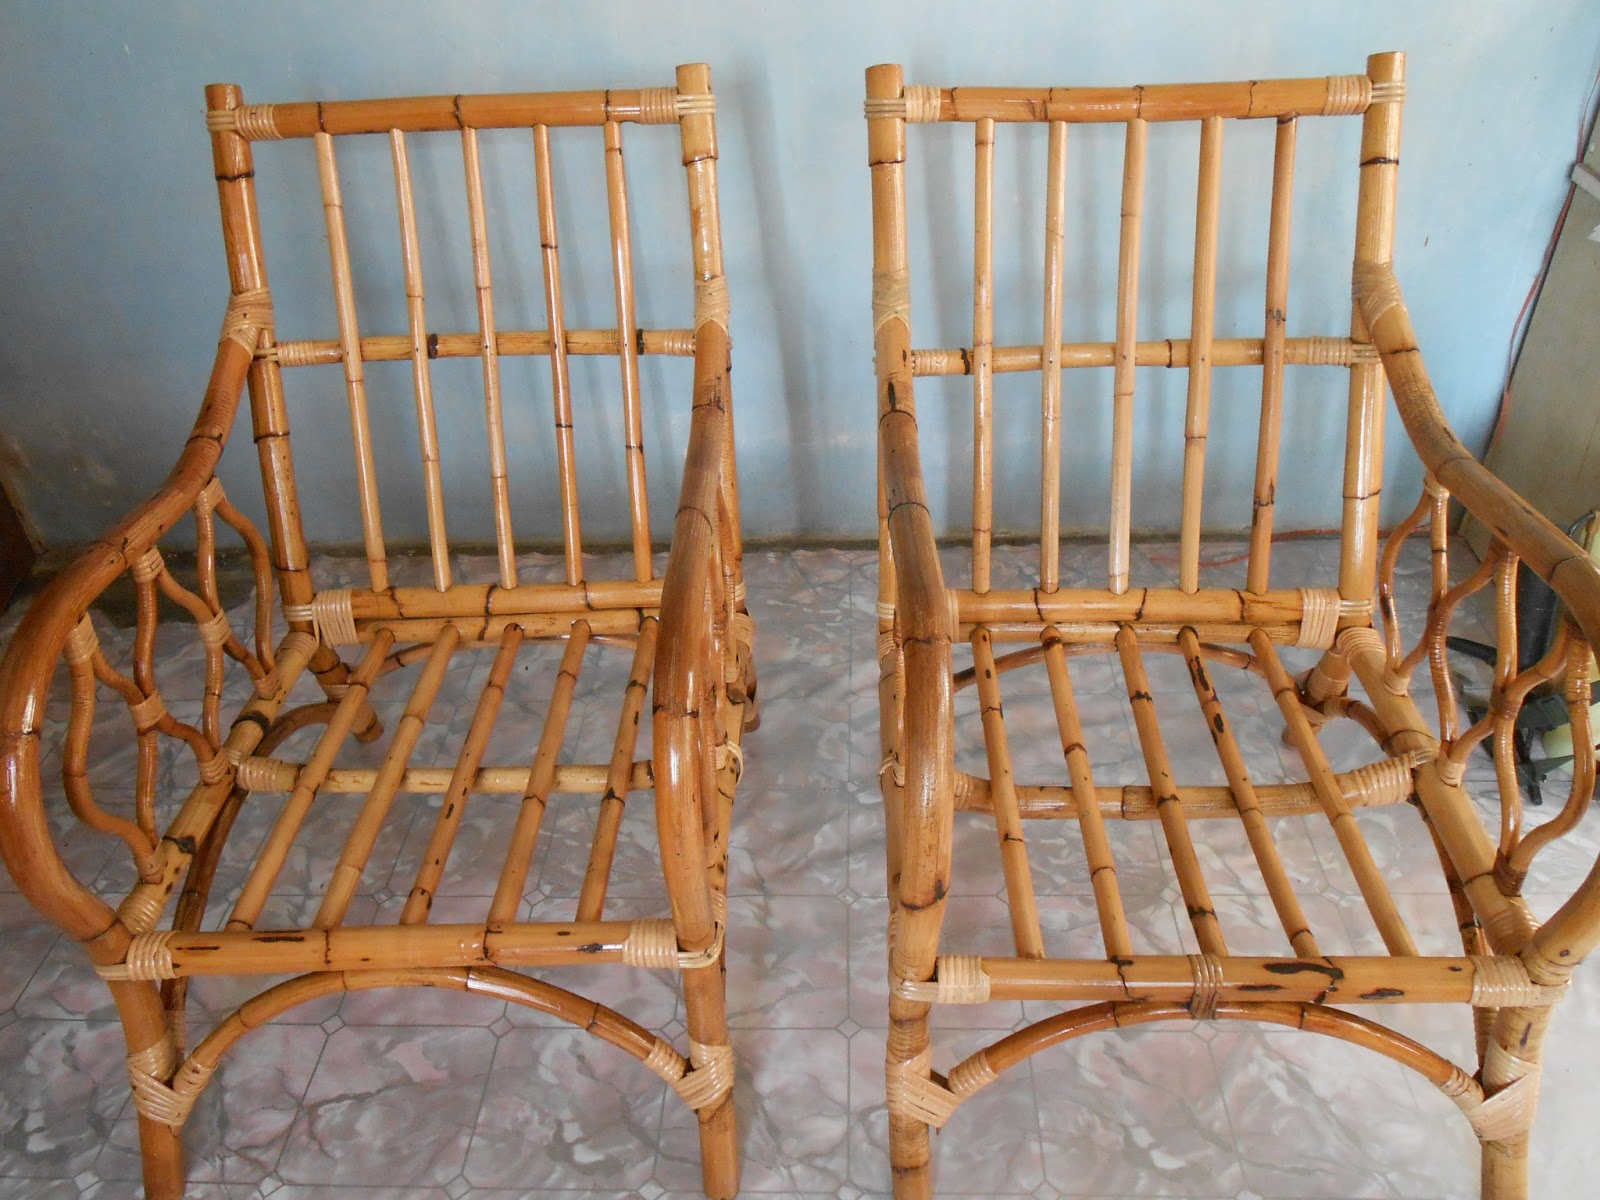 Refurnish Diy Rattan Bamboo Furniture Refurnish Rattan Part 2